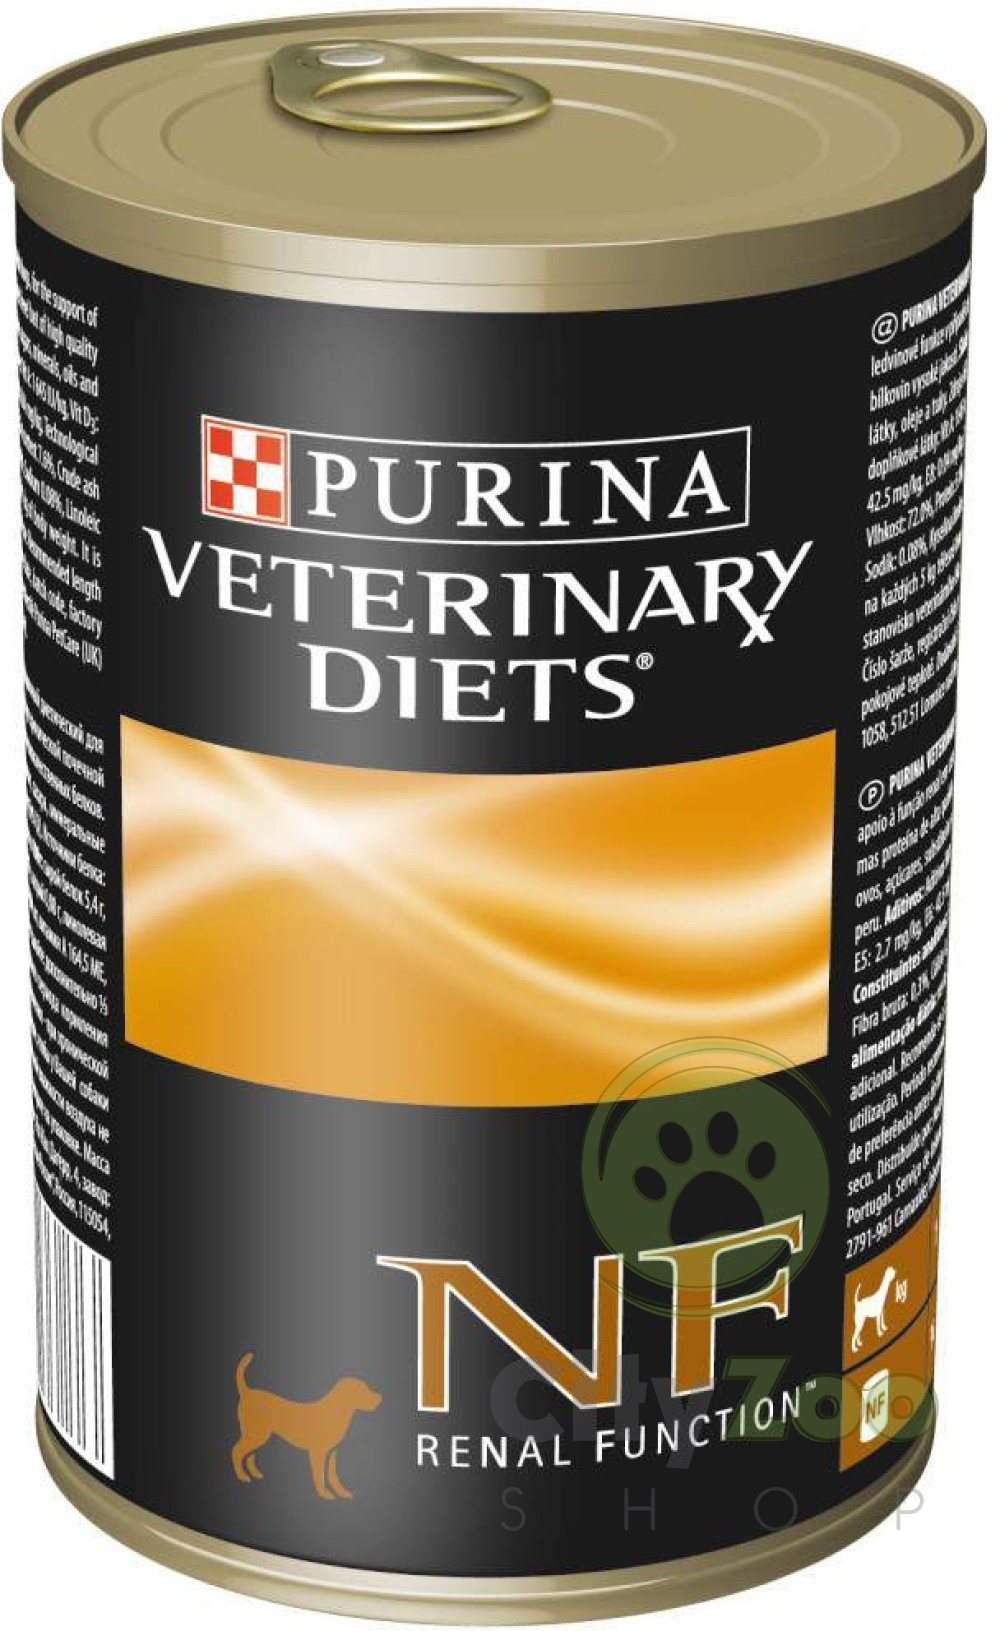 zoo/Purina_Veterinary_Diets_NF_-_Kidney_Function_Canine_konse